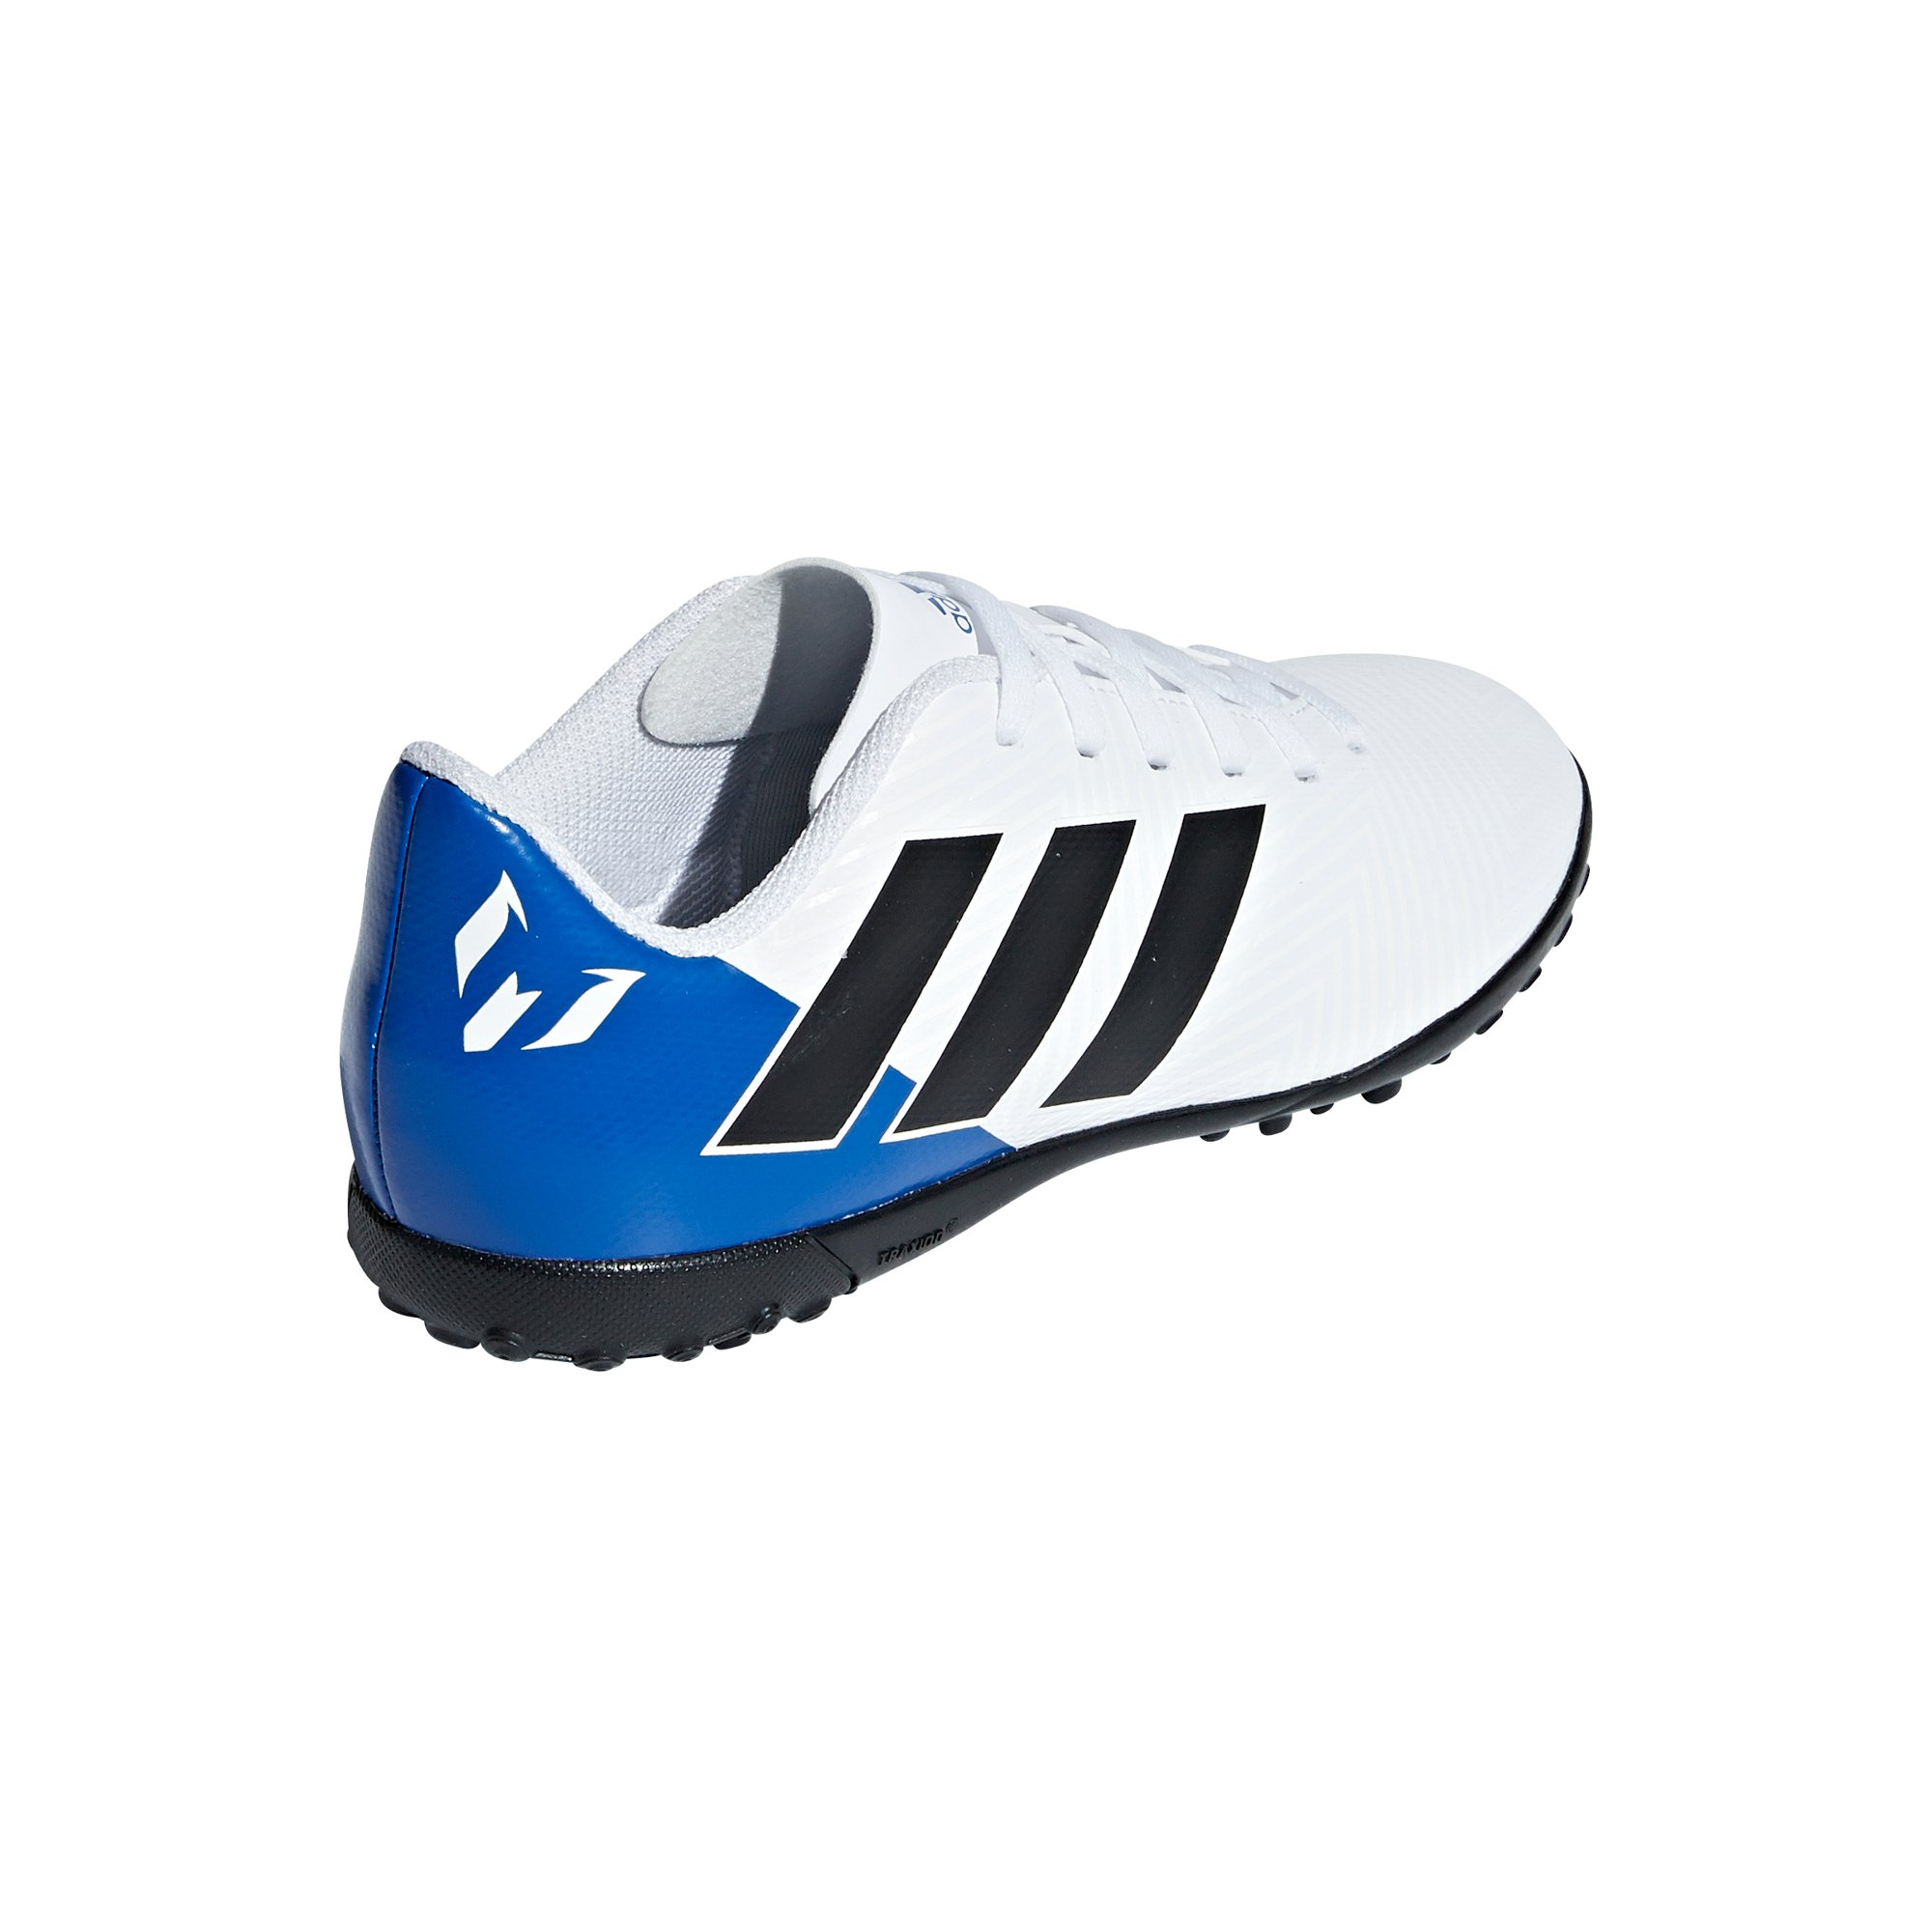 finest selection 418a2 f95af ADIDAS NEMEZIZ MESSI TANGO 18.4 TF J - gallery 2